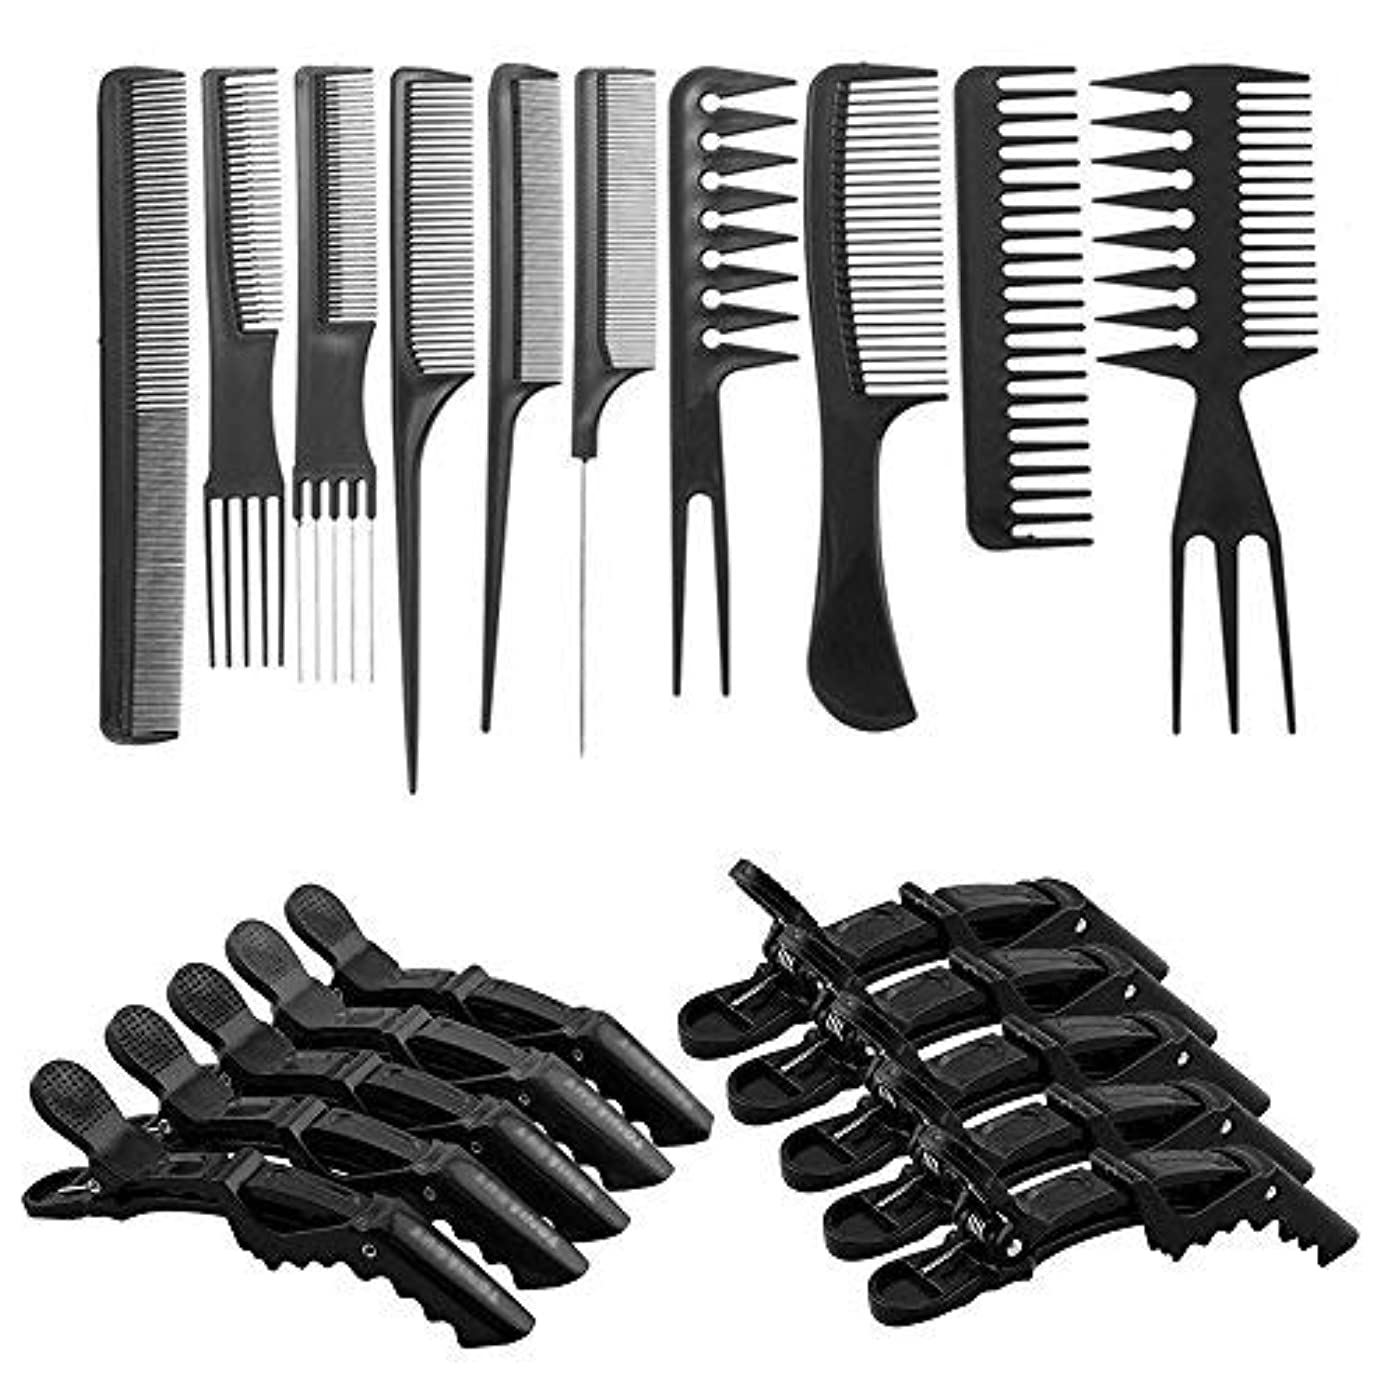 頭痛ハブブスラッシュ10 Pcs Professional Hair Styling Comb Set with Styling Clips [並行輸入品]